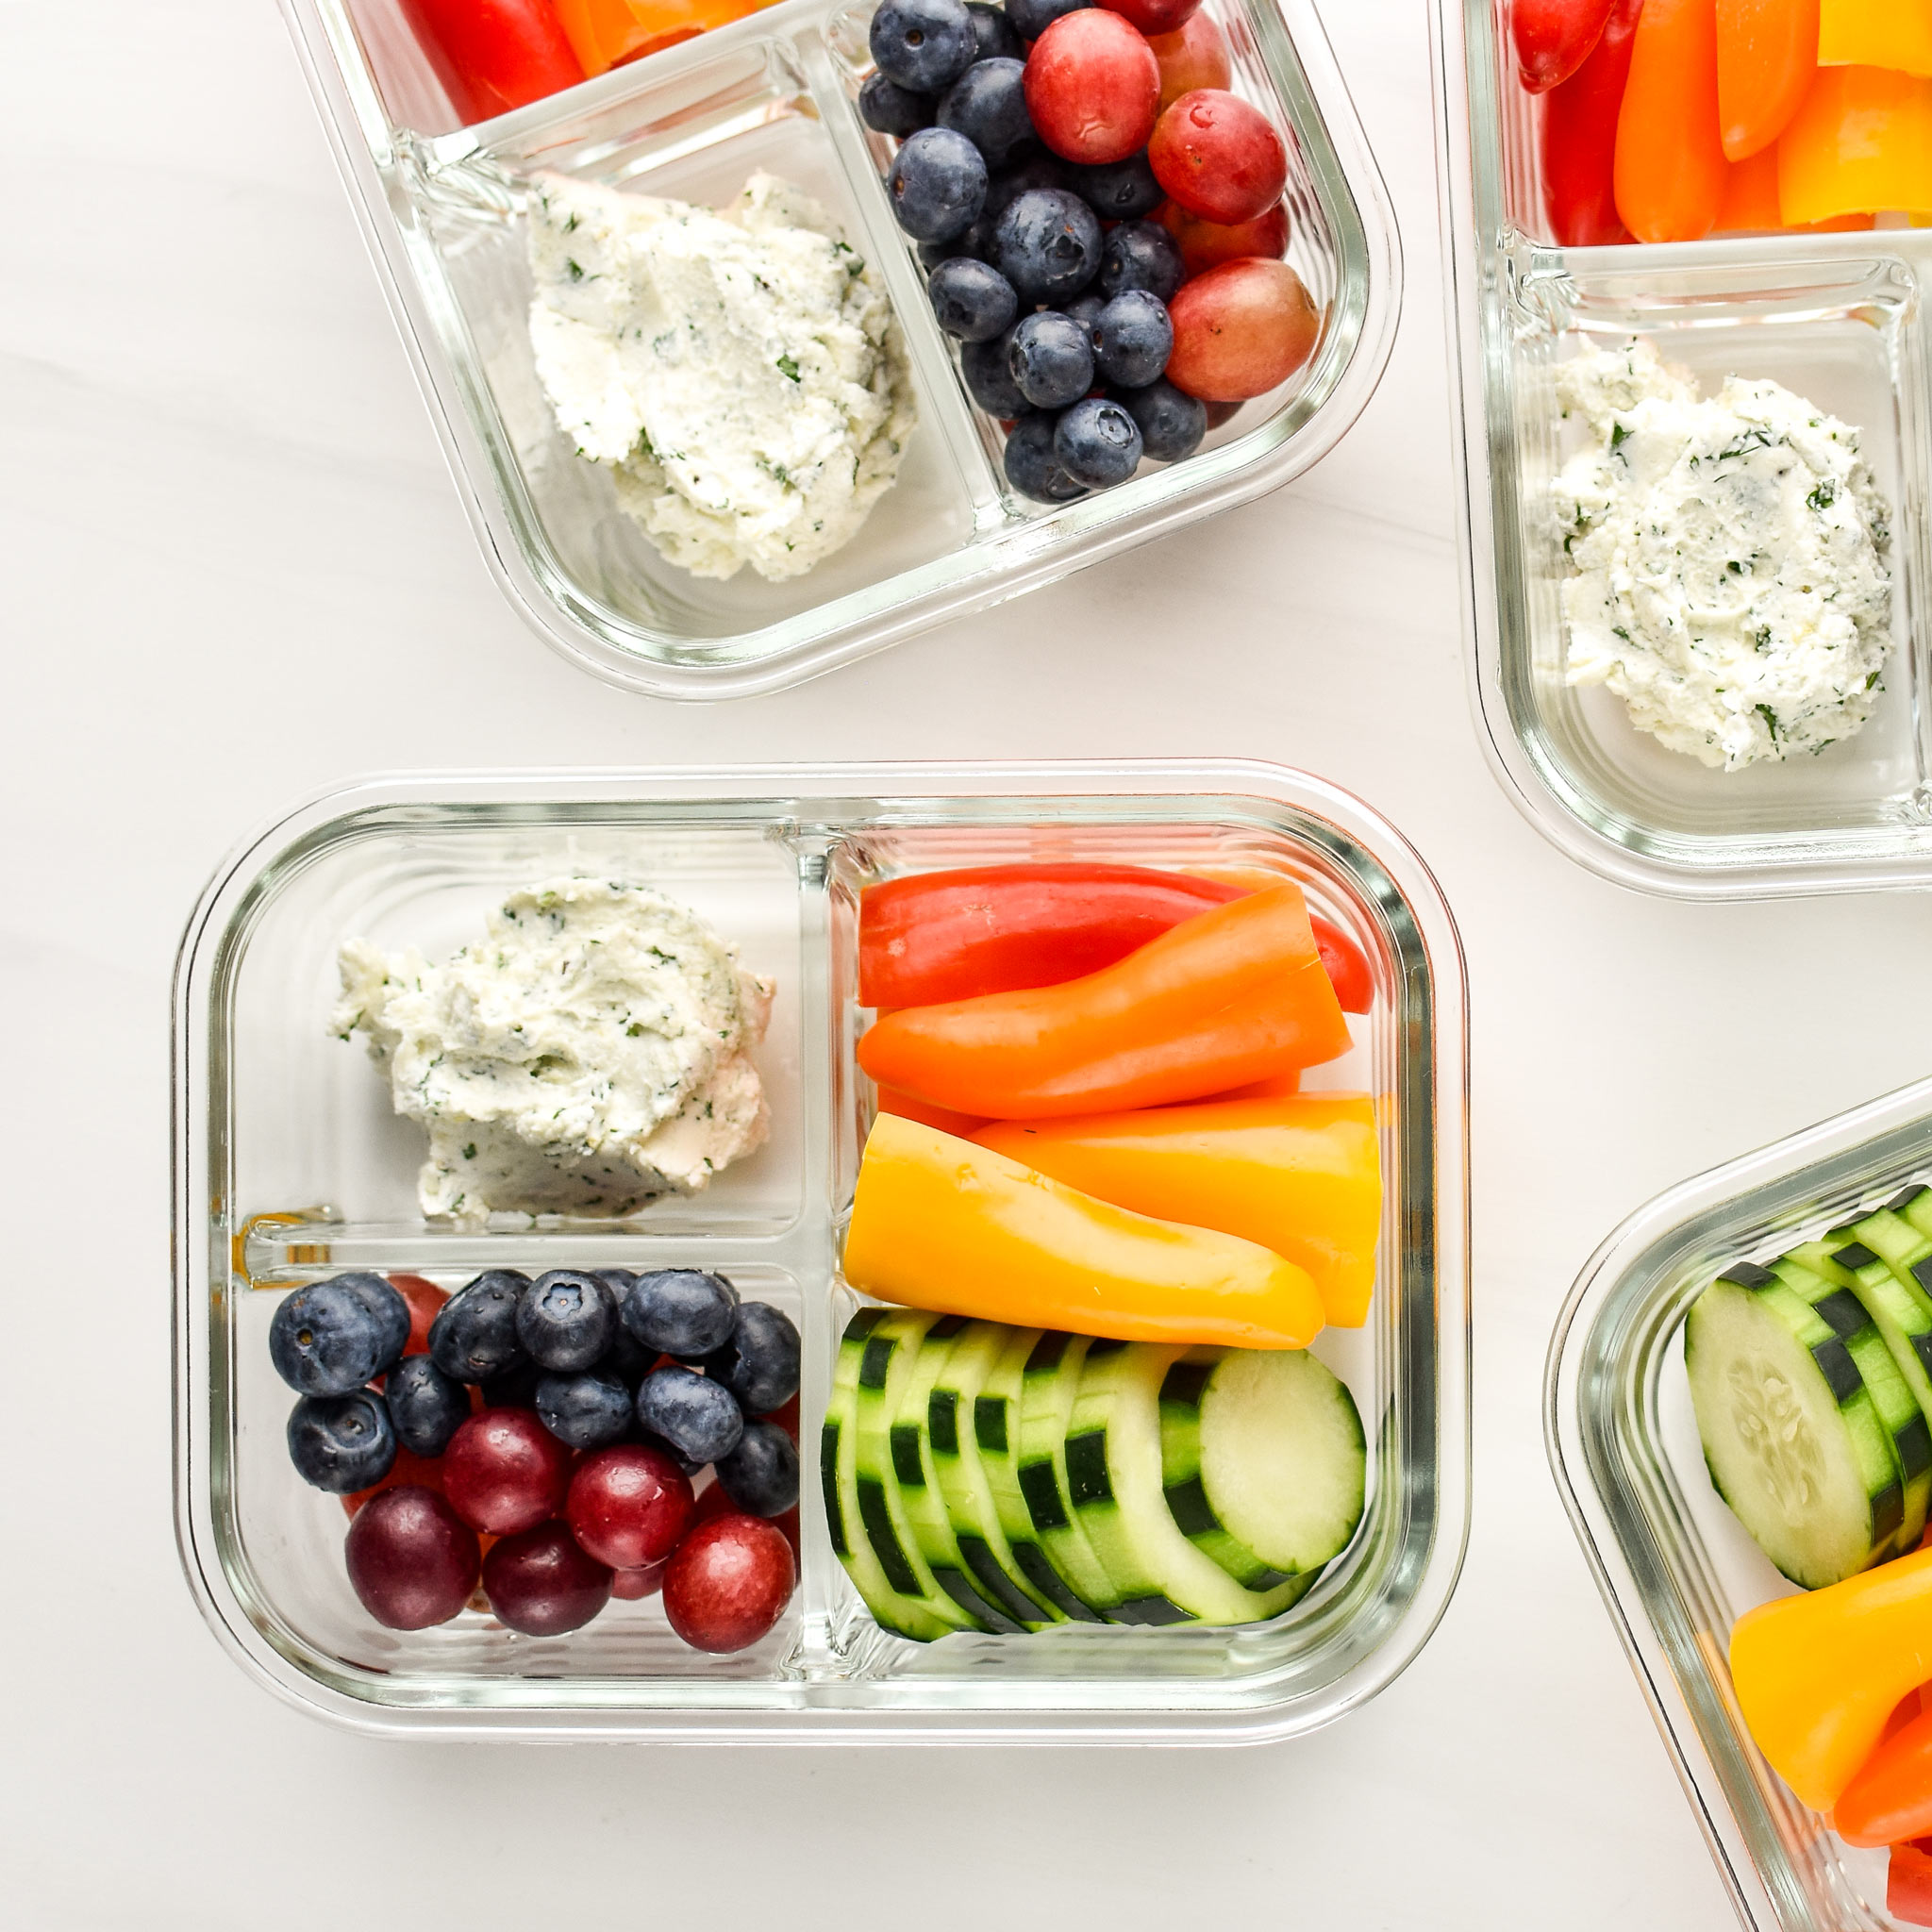 Herbed goat cheese rainbow snack boxes meal prepped in glass containers.